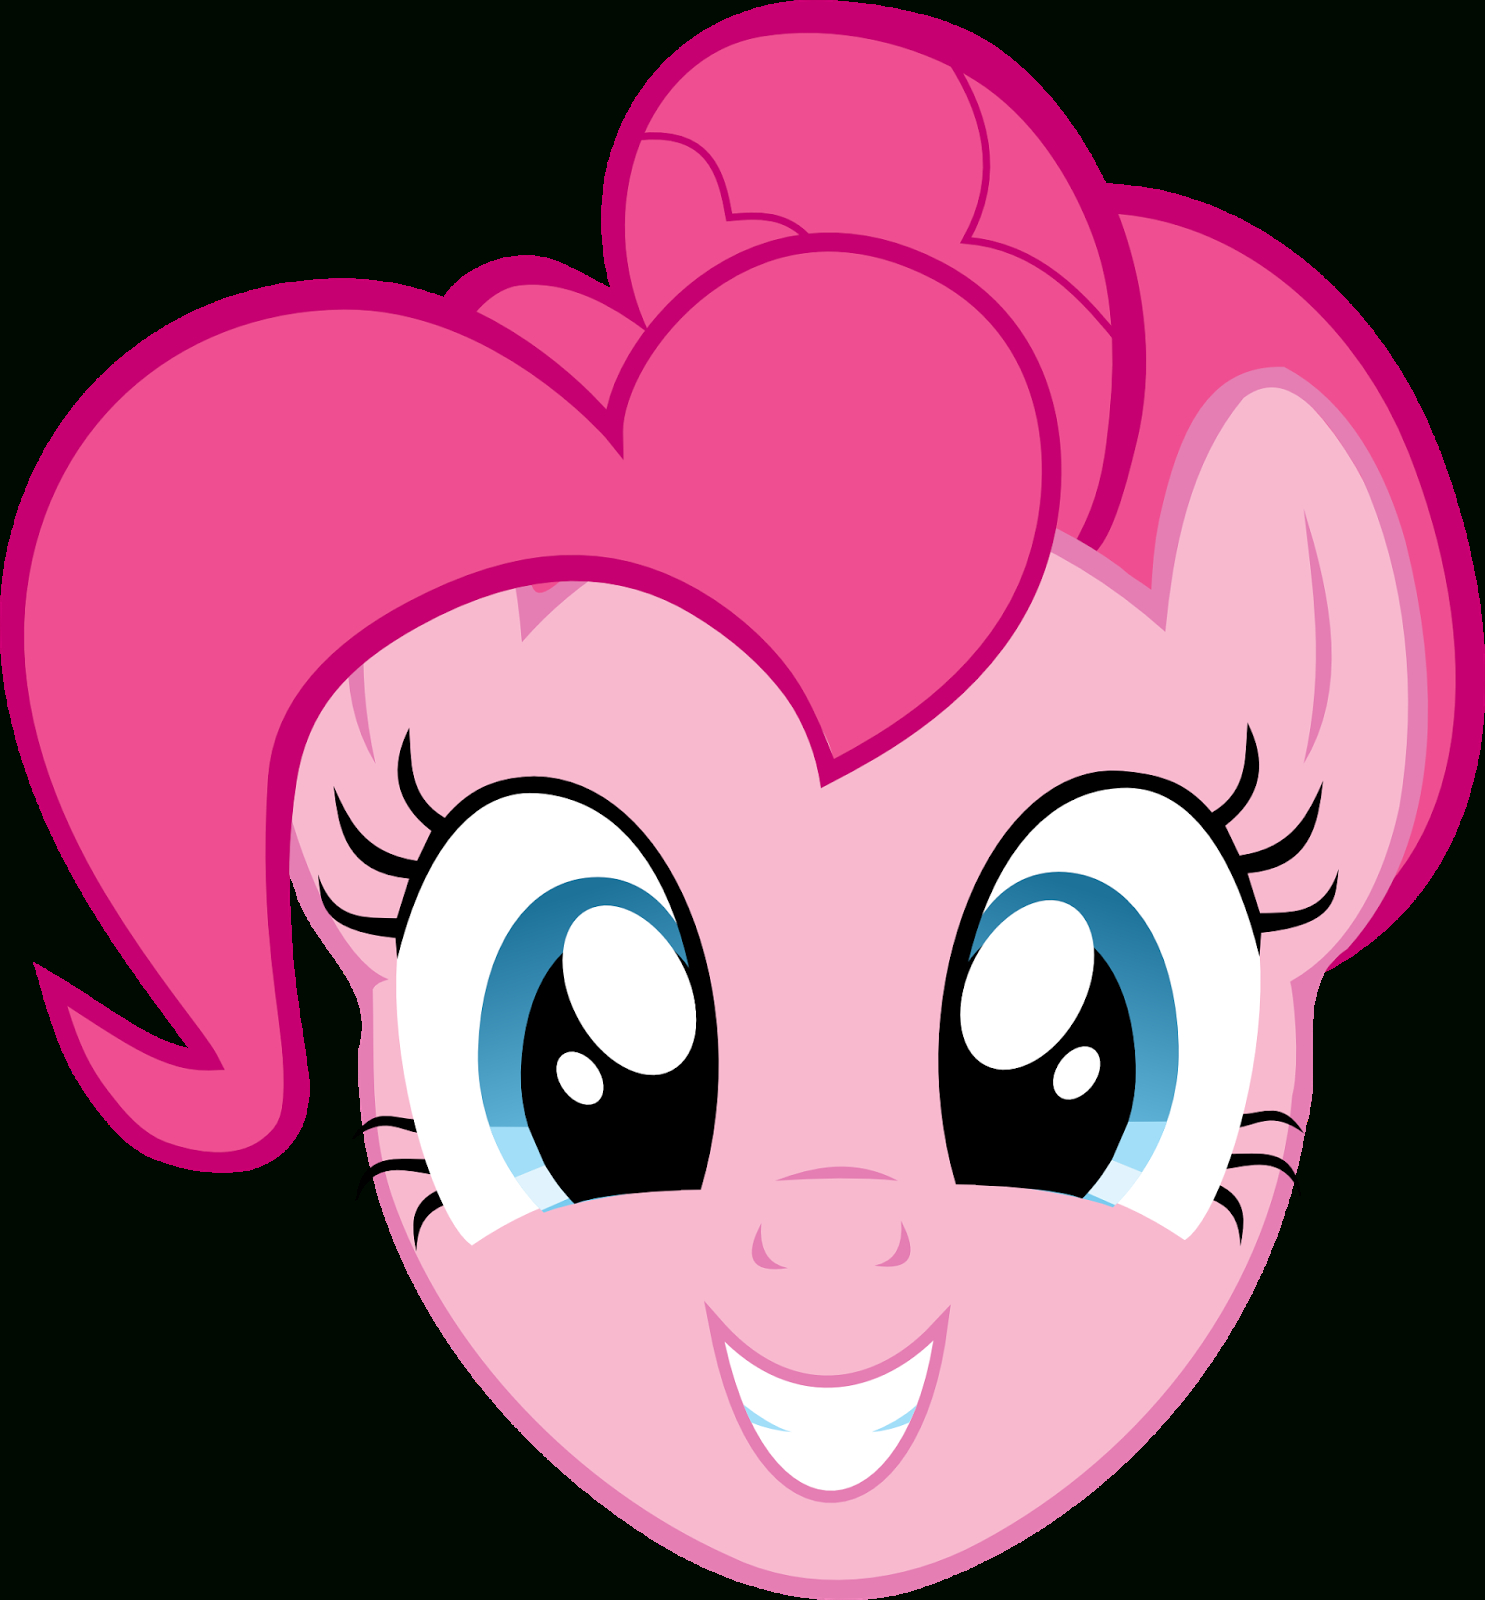 My Little Pony Free Printable Masks.   Oh My Fiesta! In English - Free My Little Pony Printable Masks